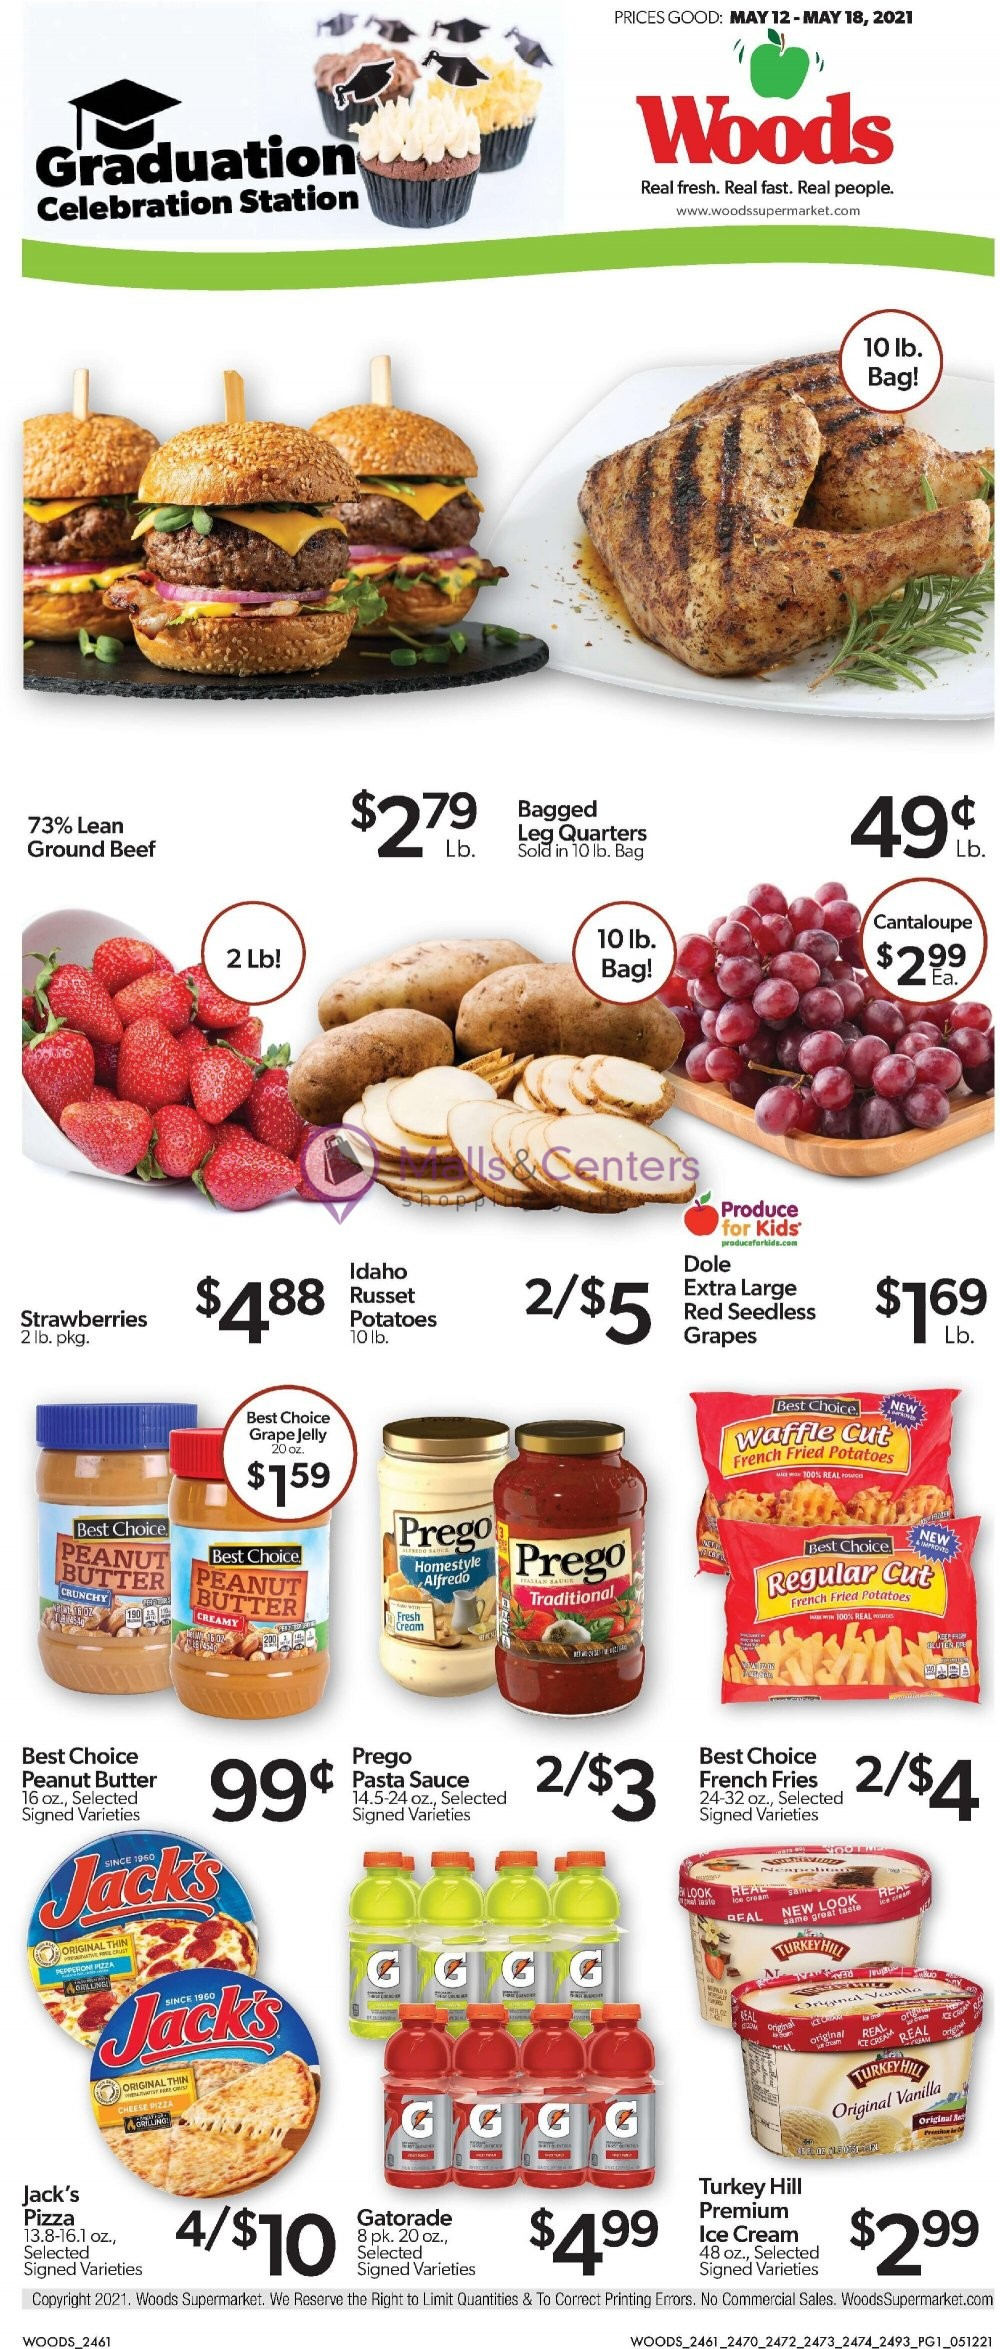 weekly ads Woods Supermarket - page 1 - mallscenters.com